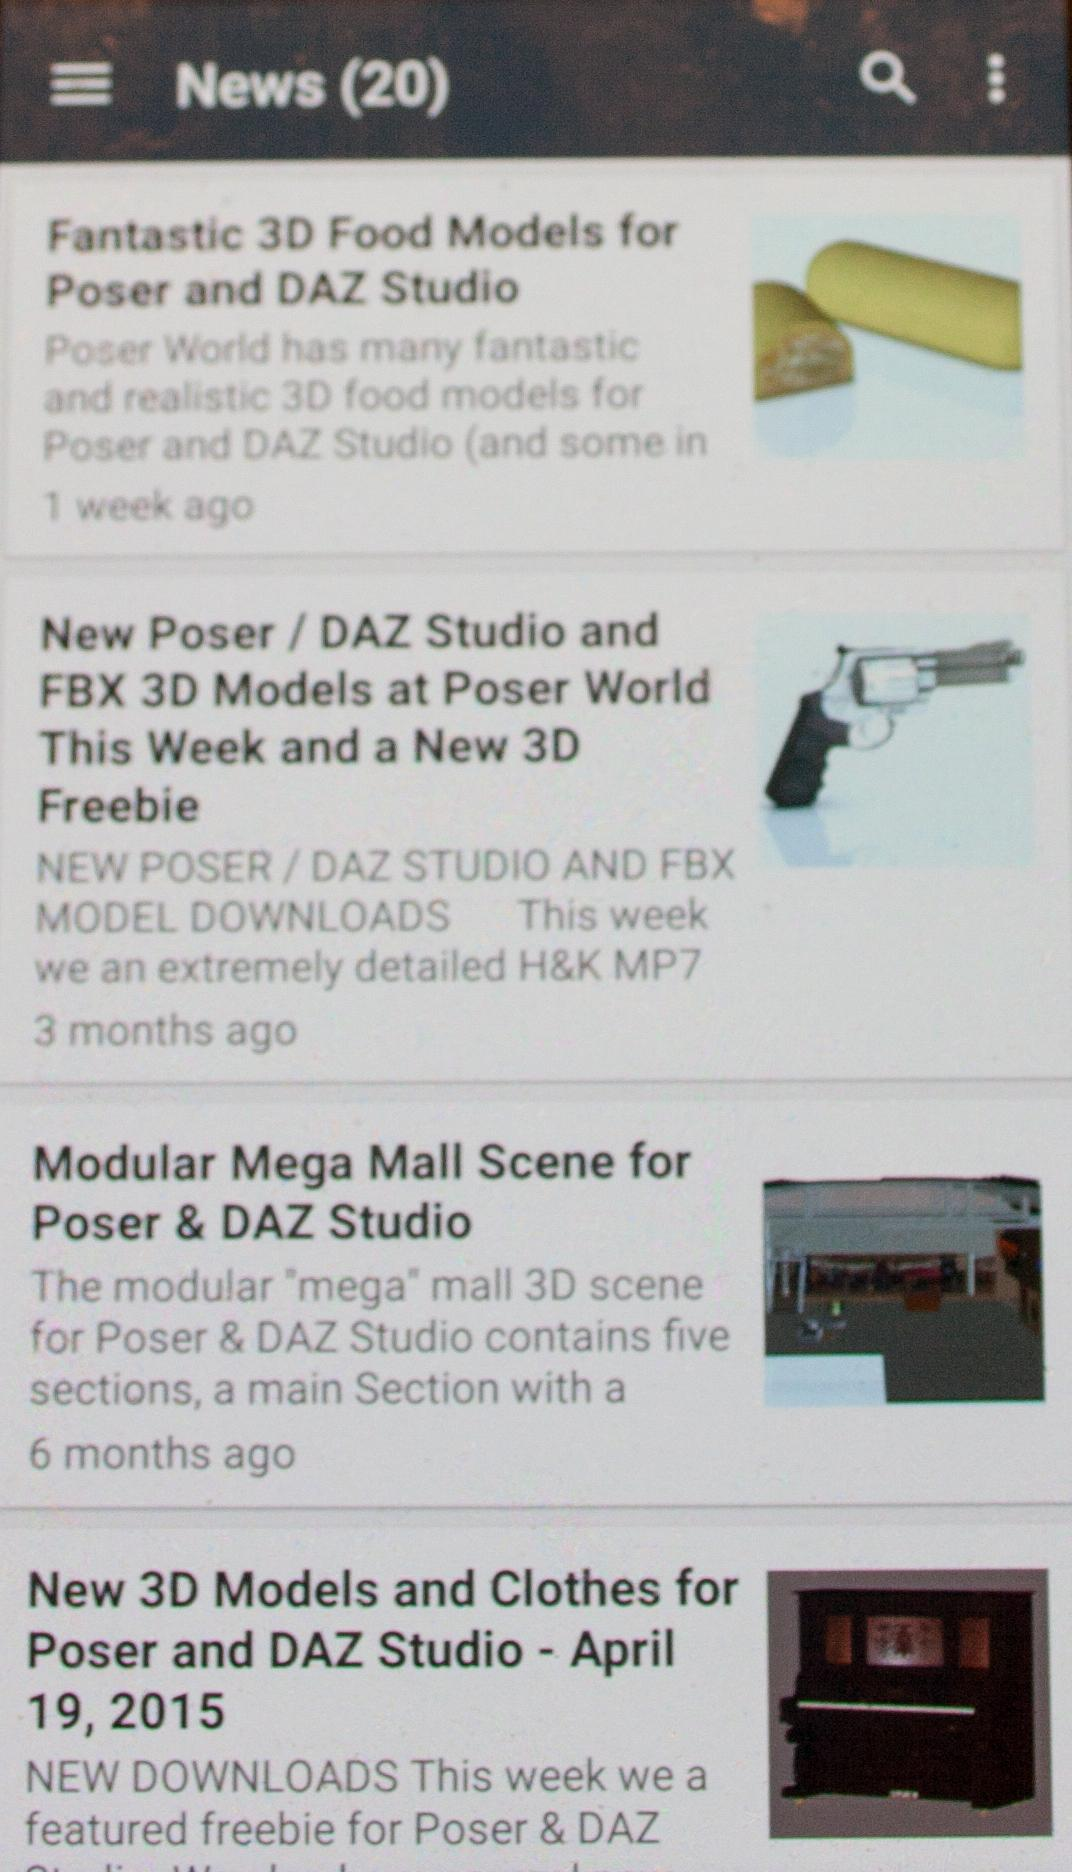 Poser World 3D for Android - APK Download